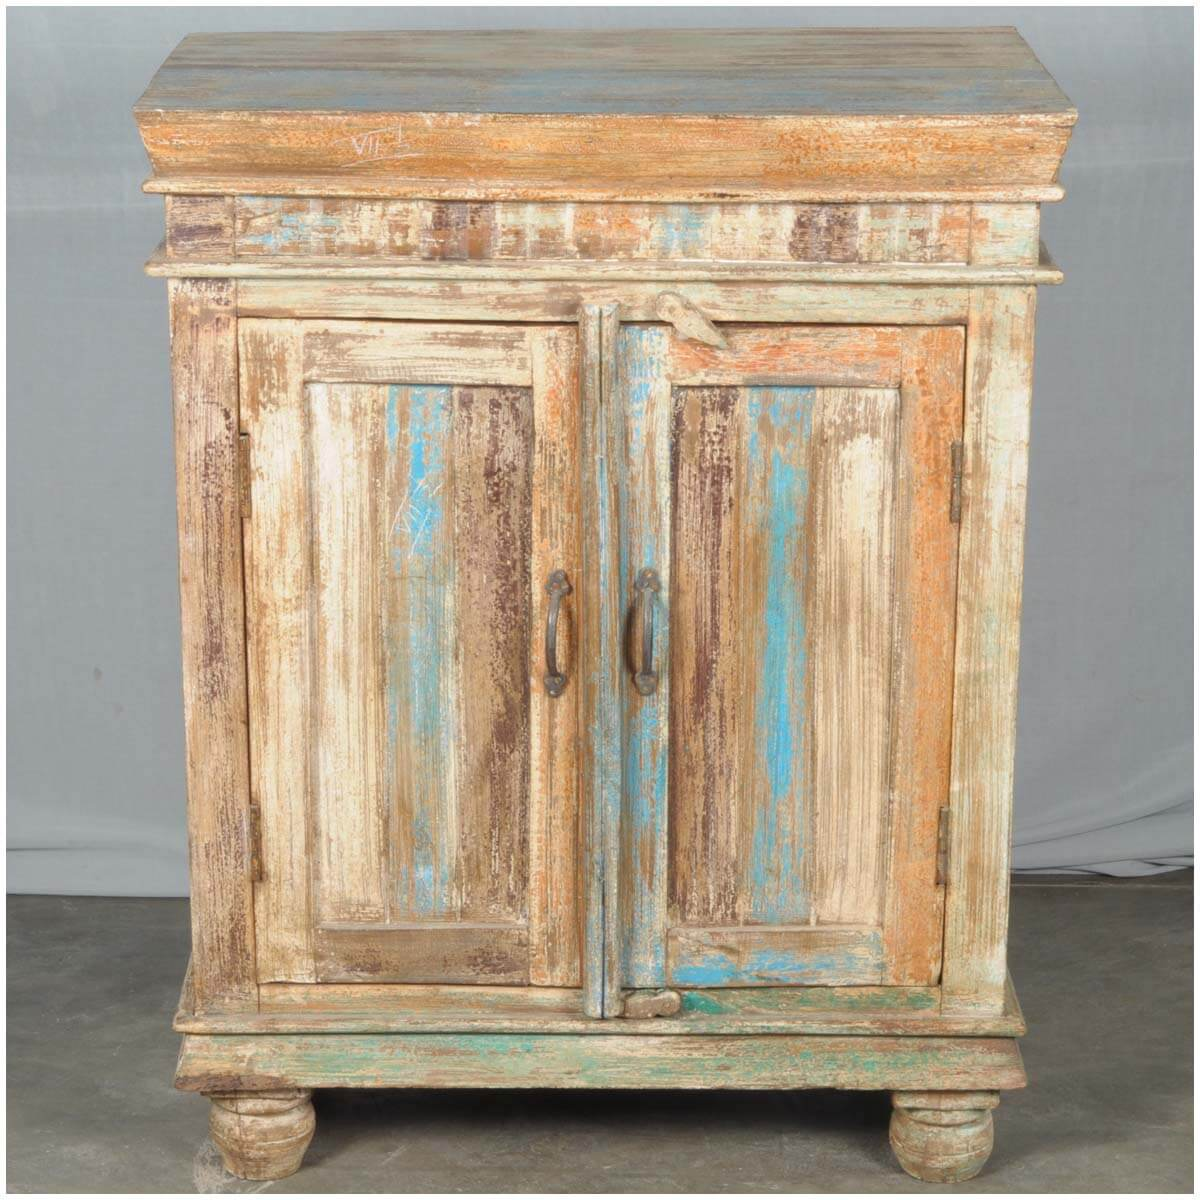 Very Impressive portraiture of Home Artisan Collection Farmhouse Reclaimed Wood 2 Door Rustic Cabinet with #906B3B color and 1200x1200 pixels